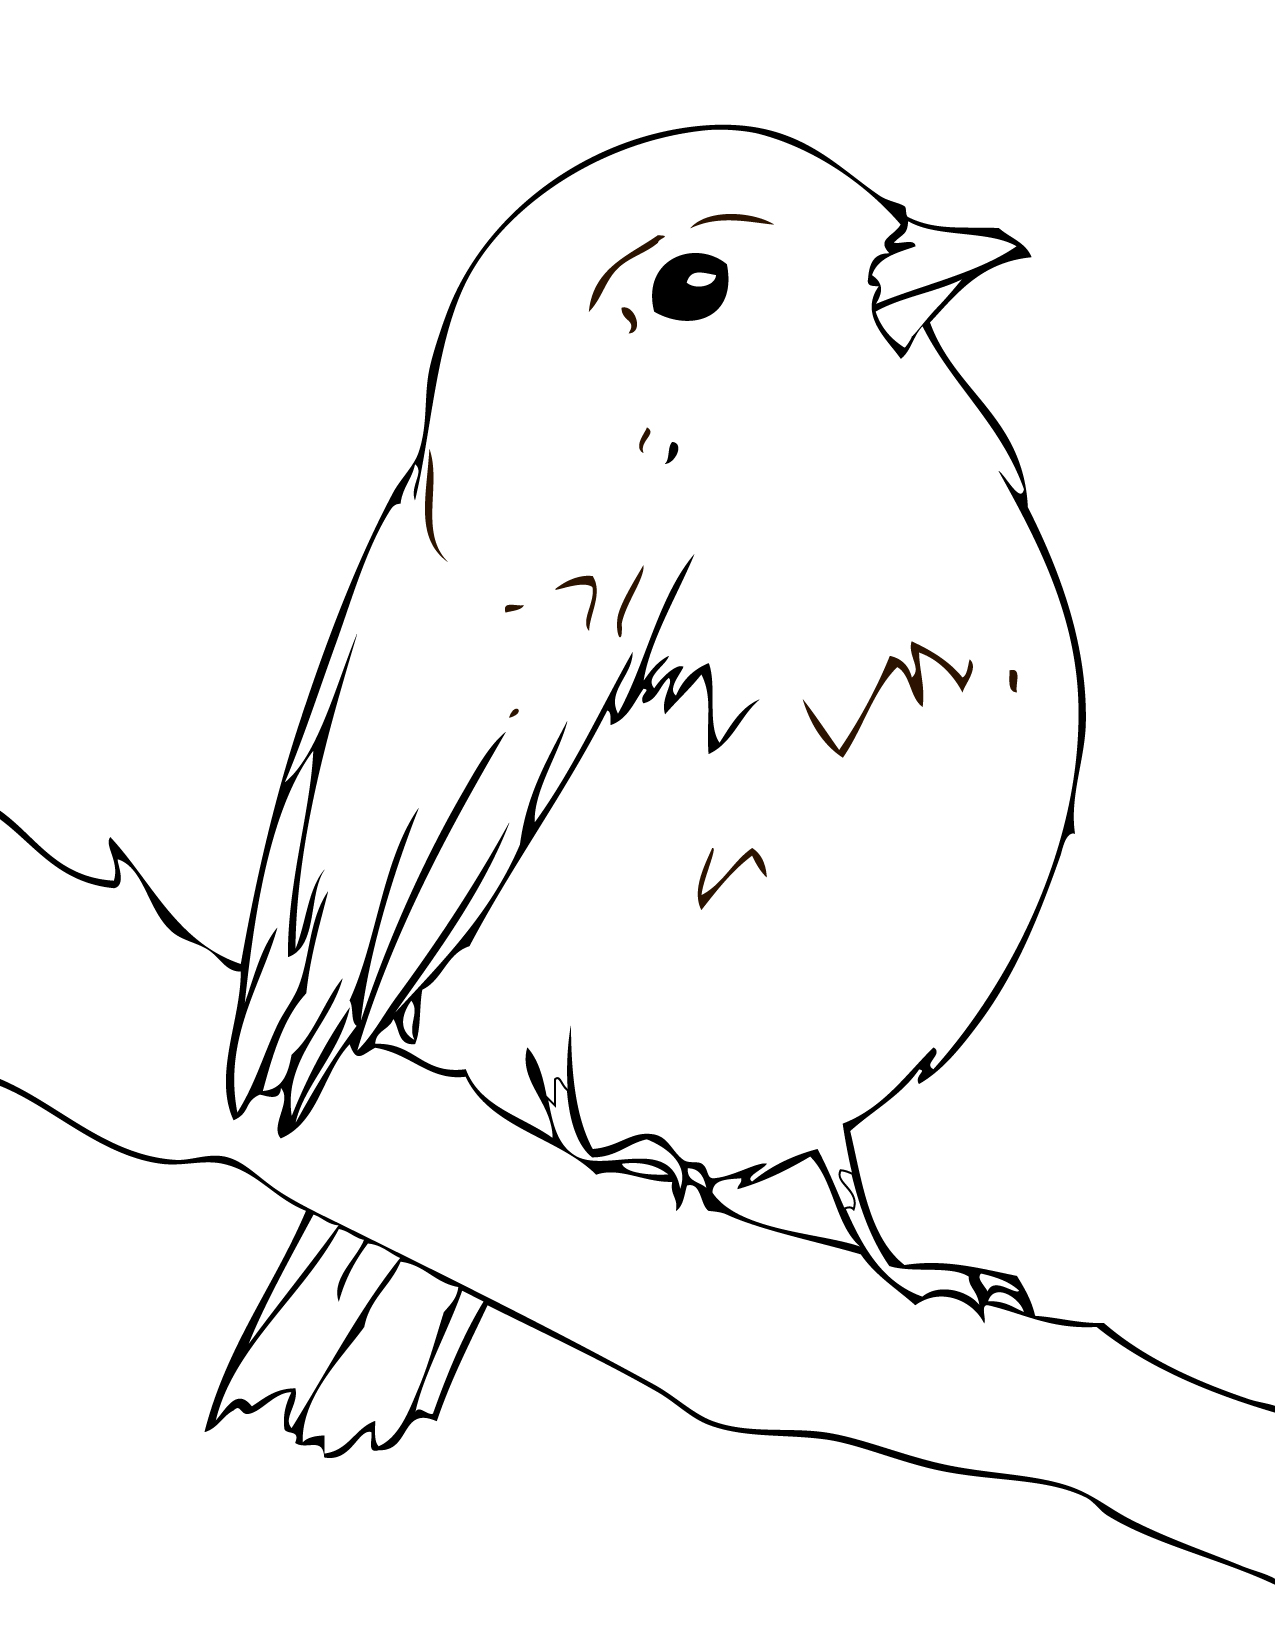 song birds coloring pages - photo#20